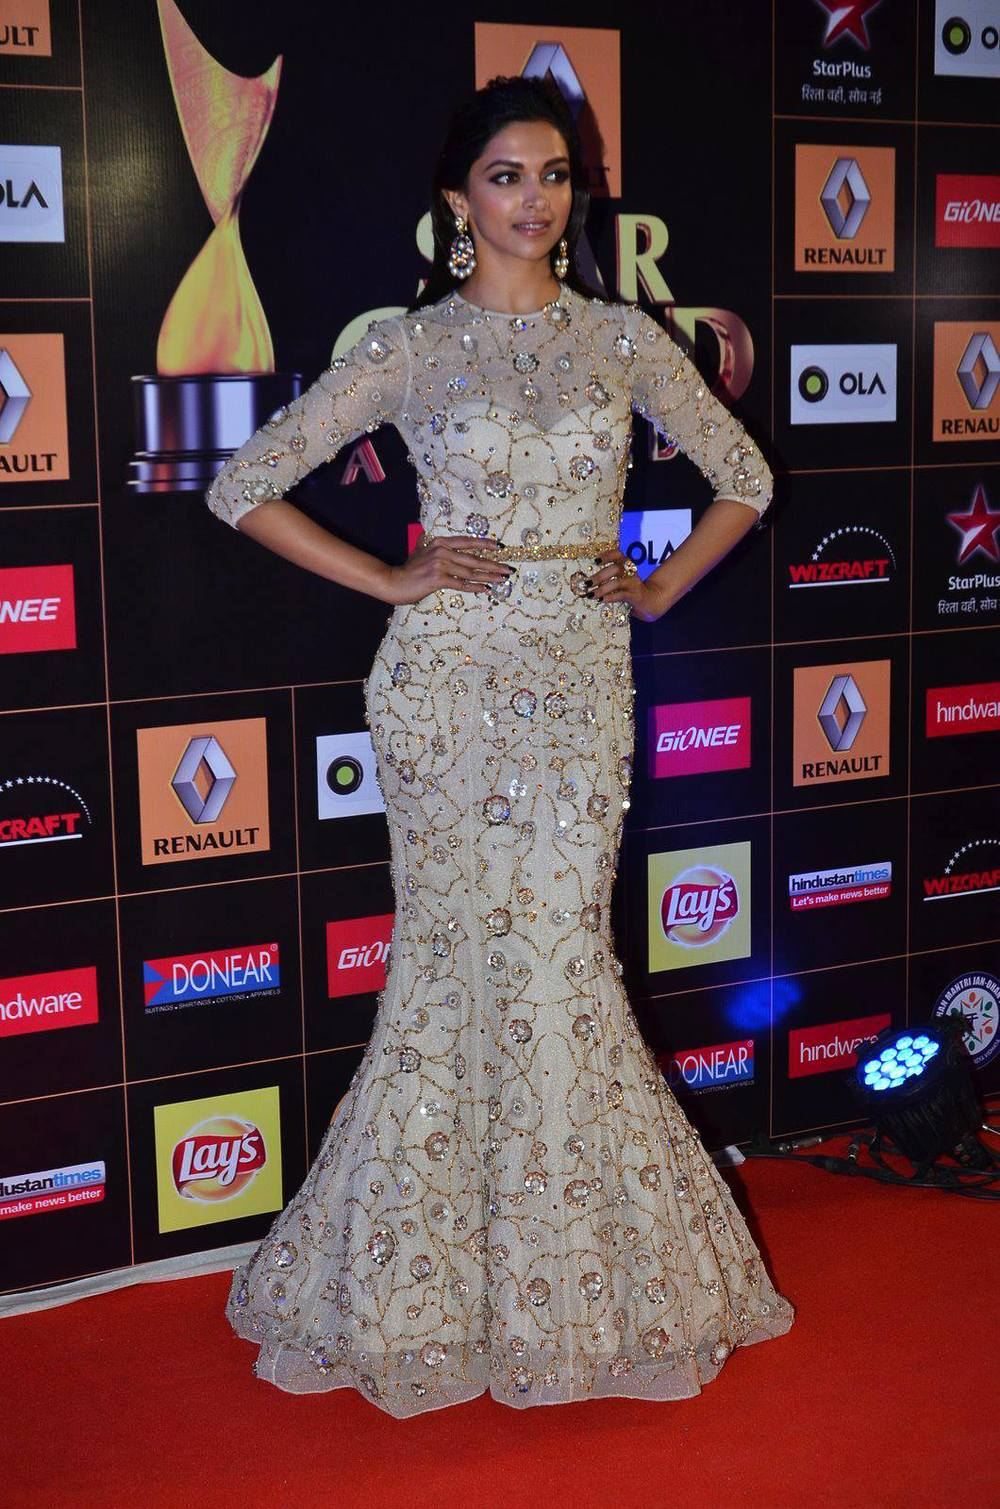 star-guild-awards-2015-deepika-padukone-01.jpg